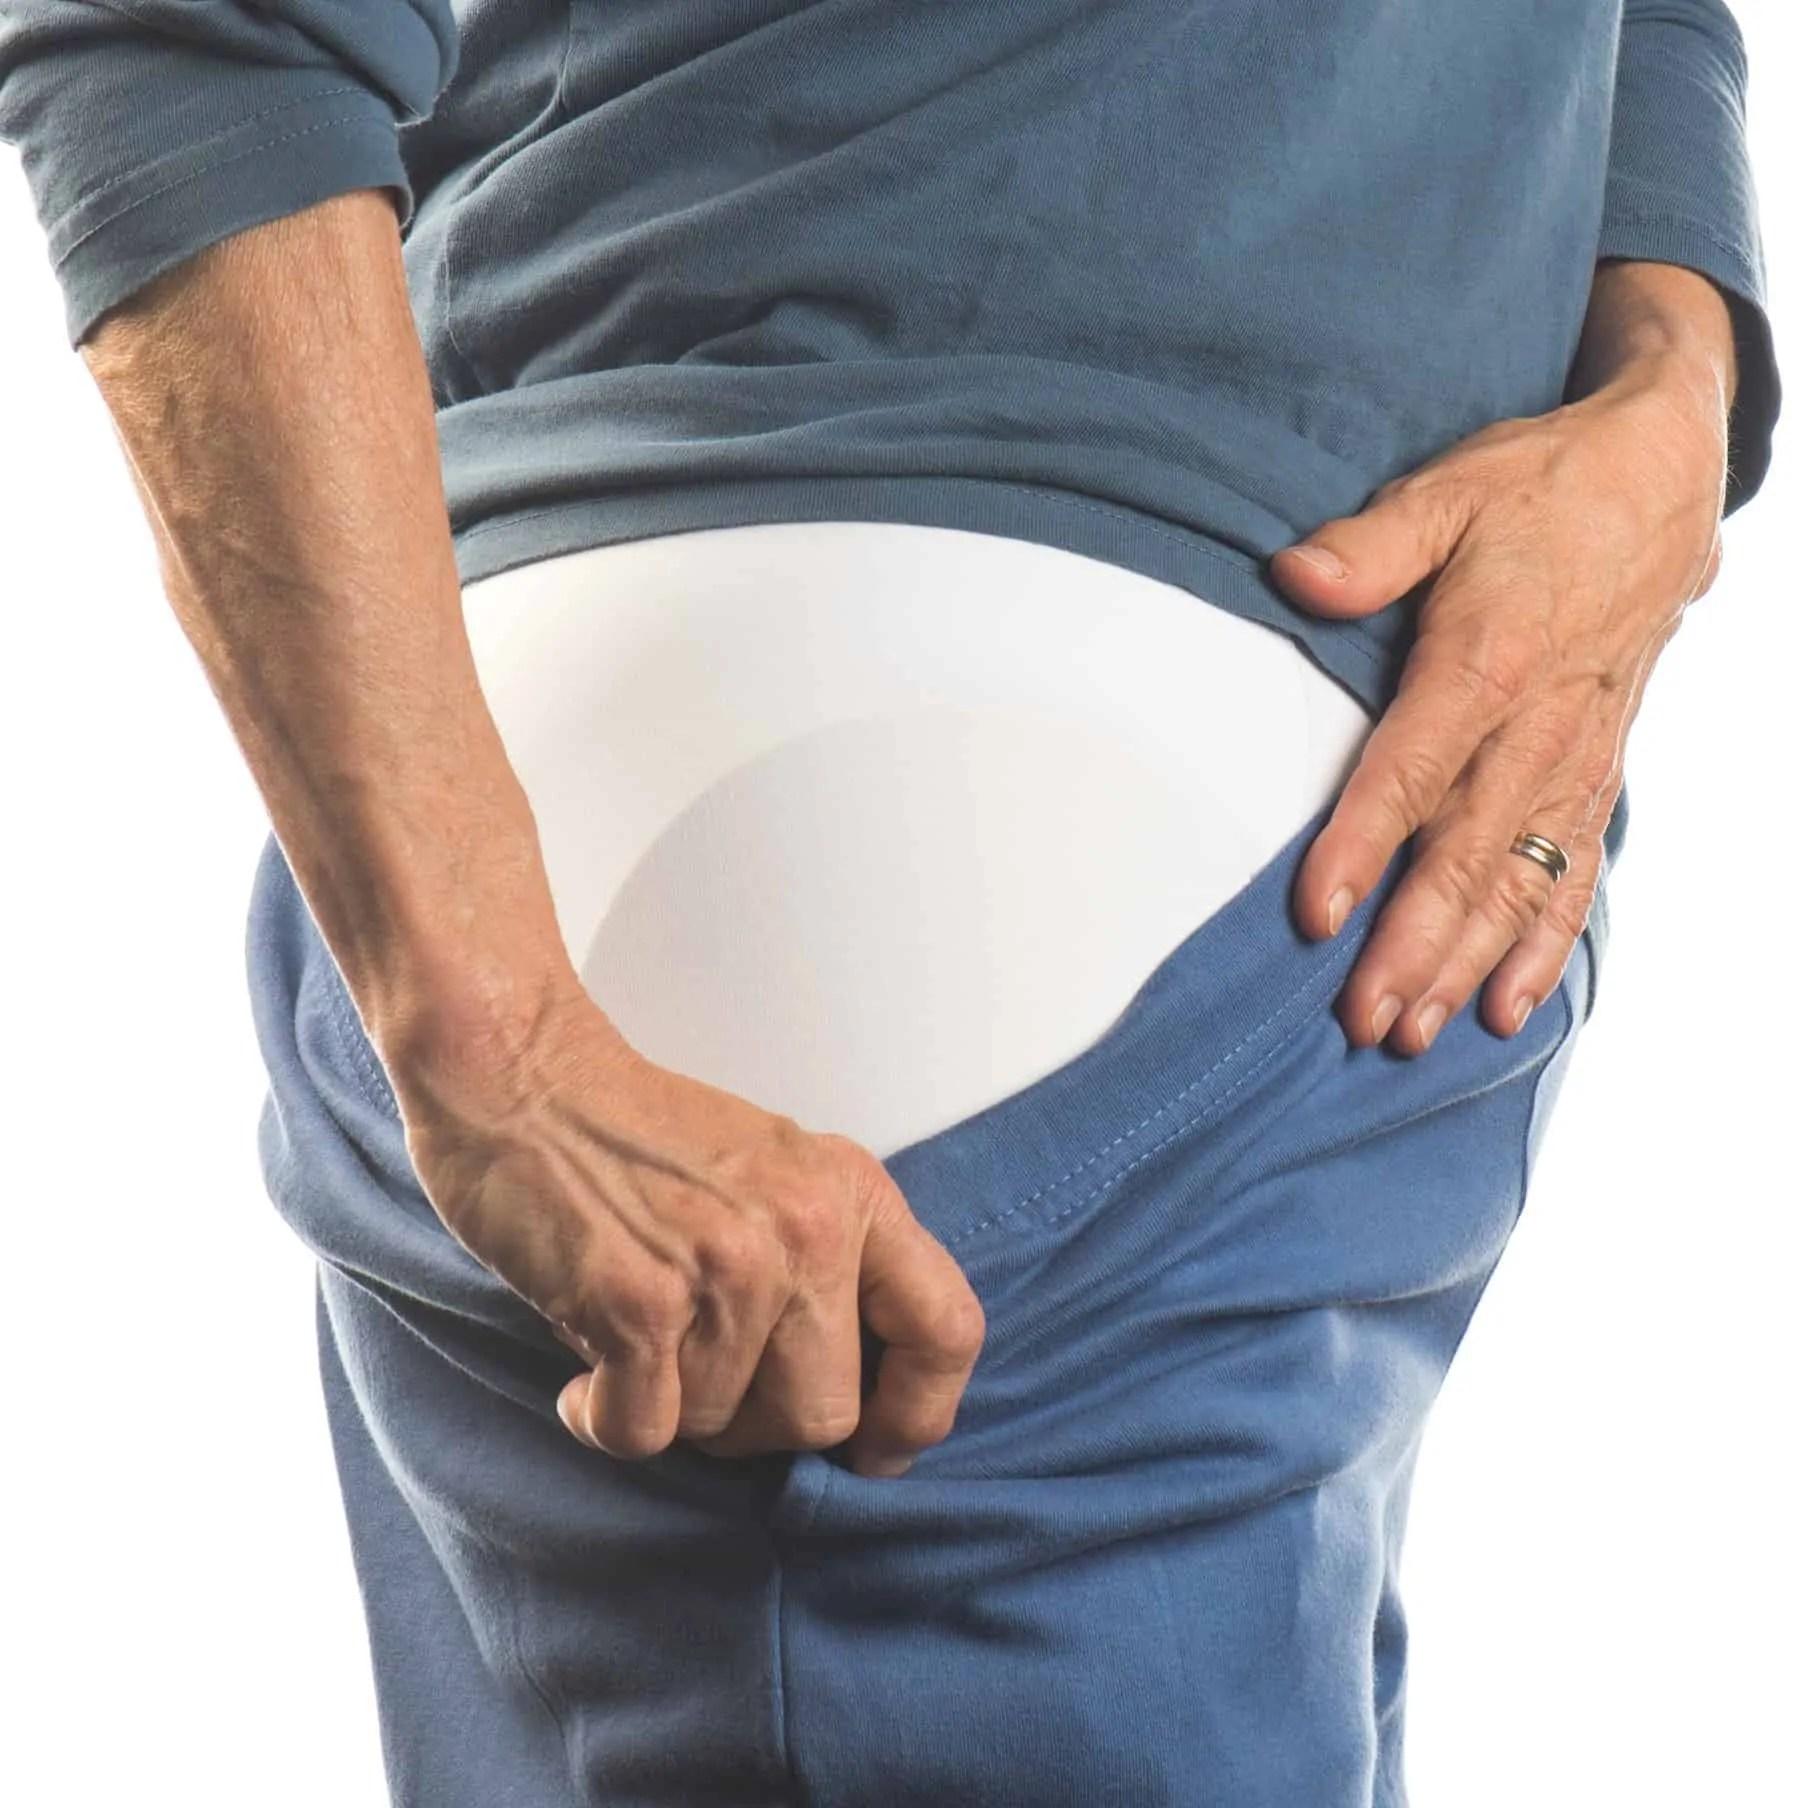 Geriatric Hip Protection Pads